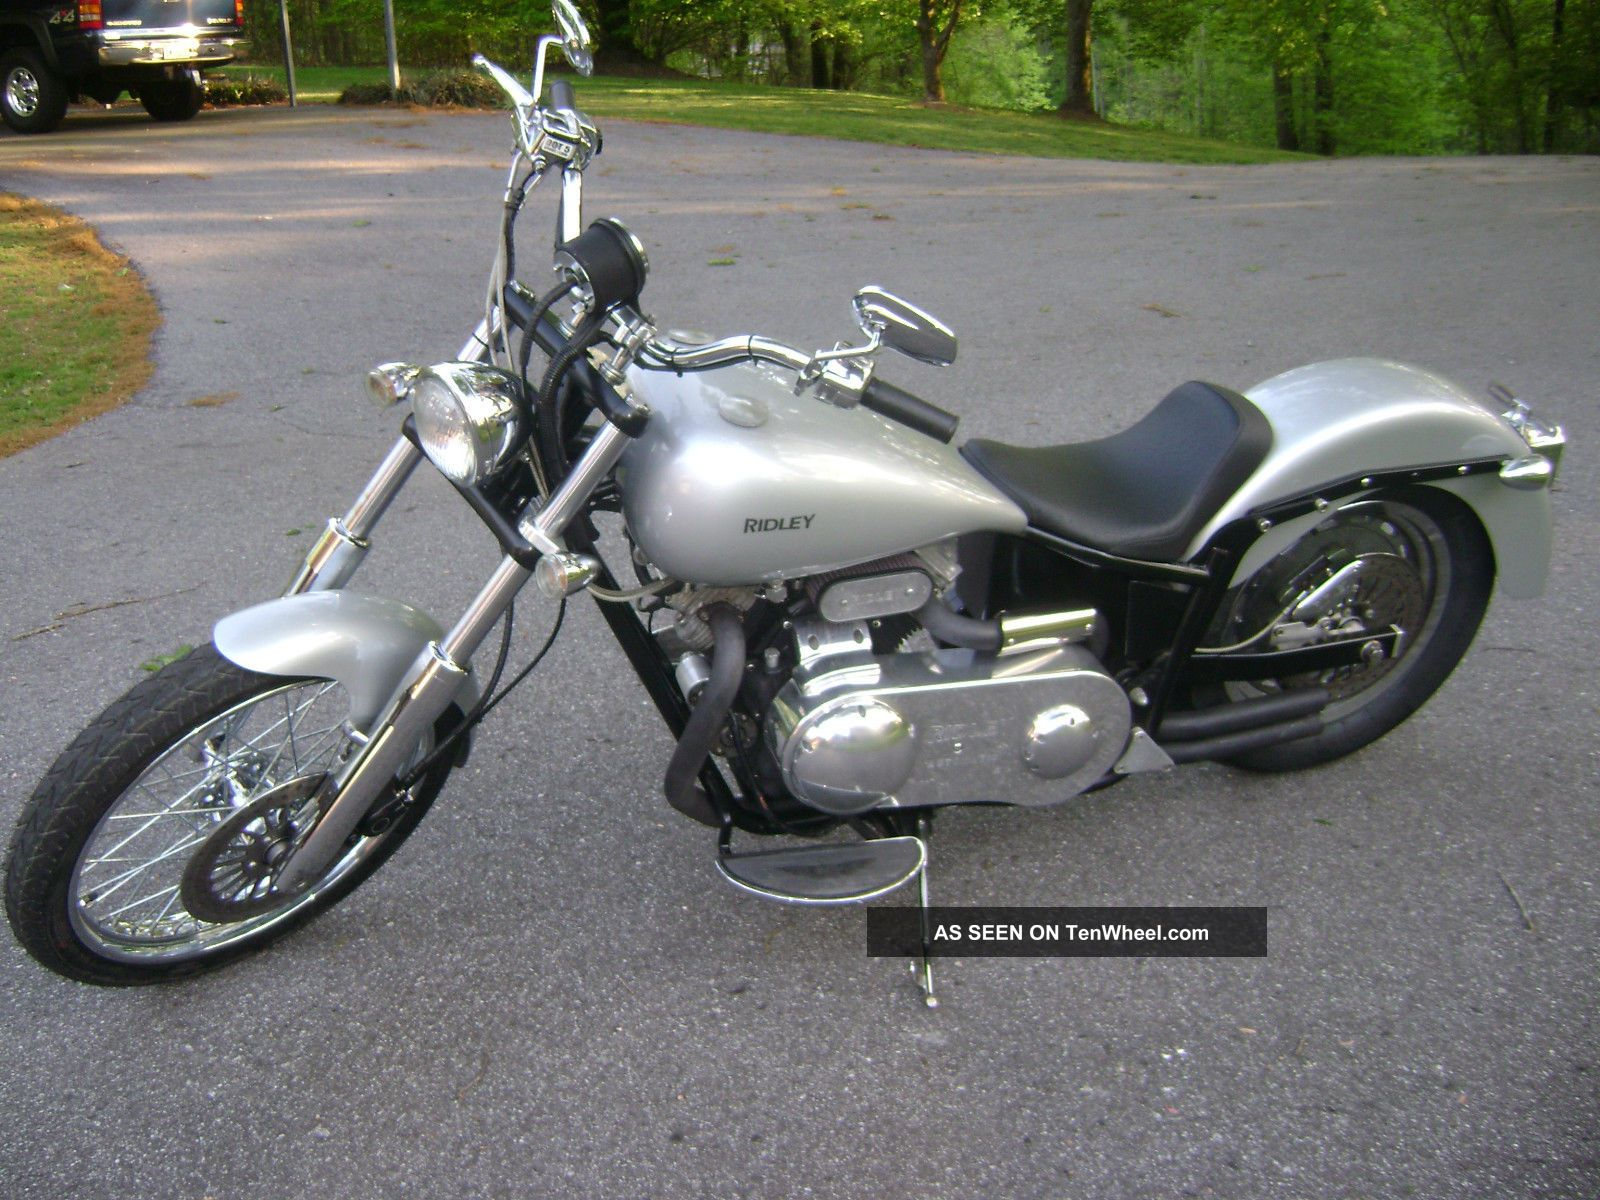 2007 Ridley Auto Glide Tt Other Makes photo